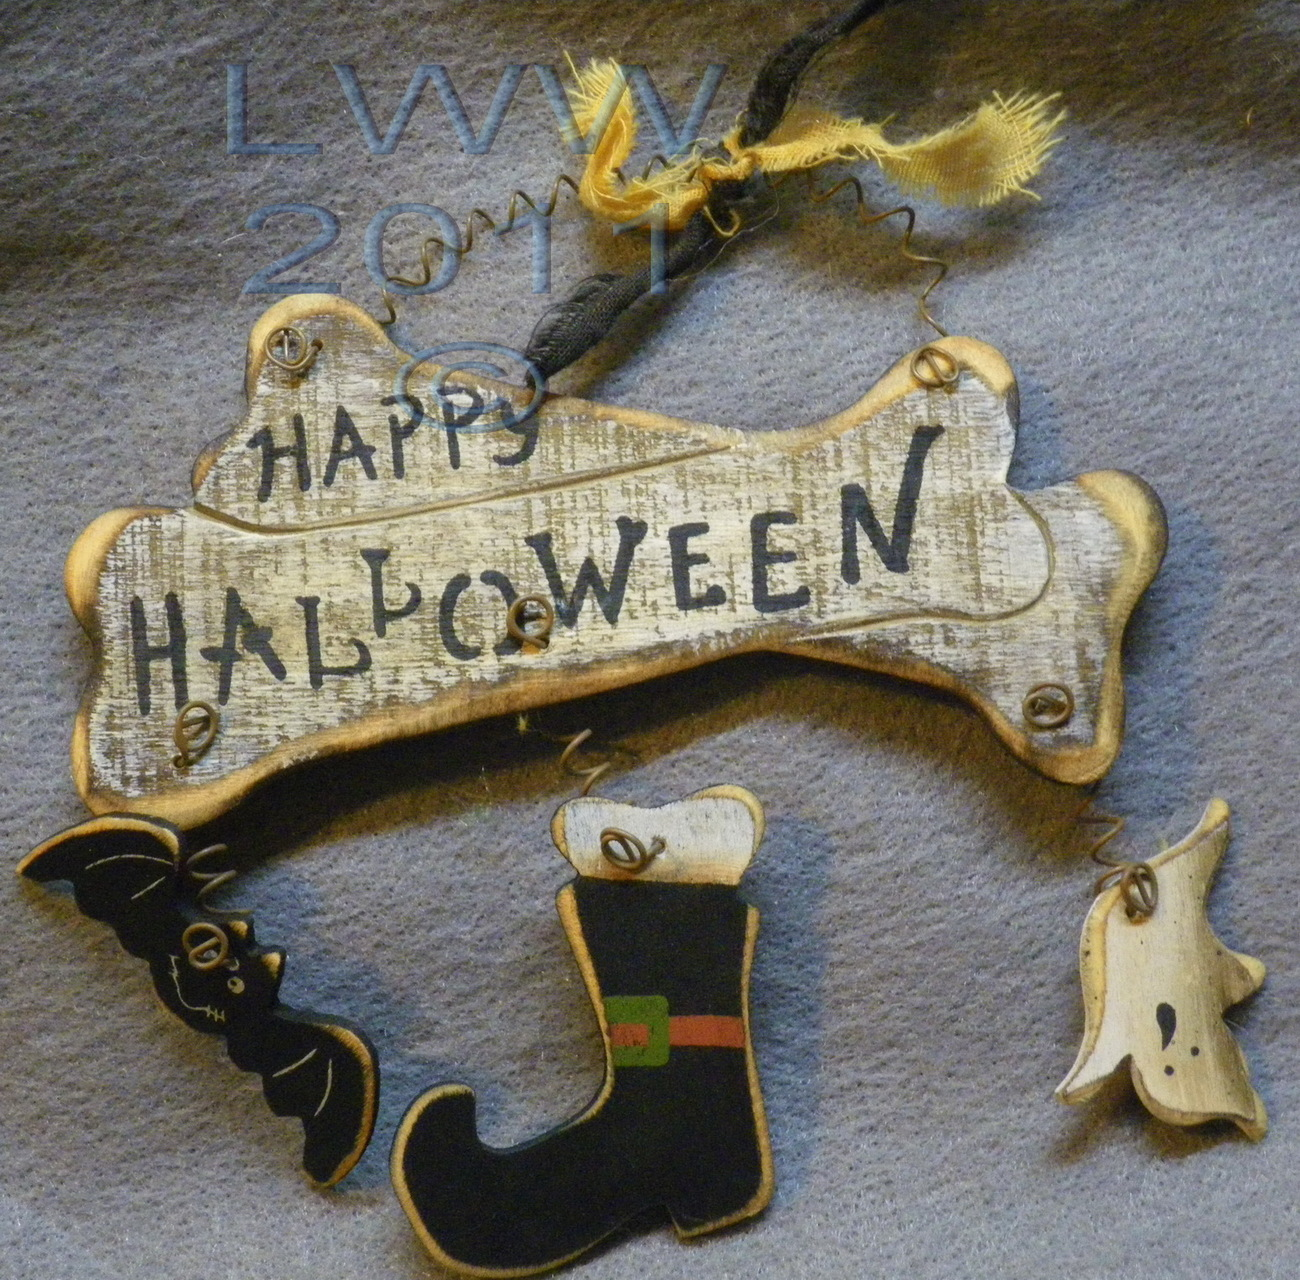 Small Bones Ghost Bat Witch Shoe Boot Happy Halloween Primitive Sign Ornament